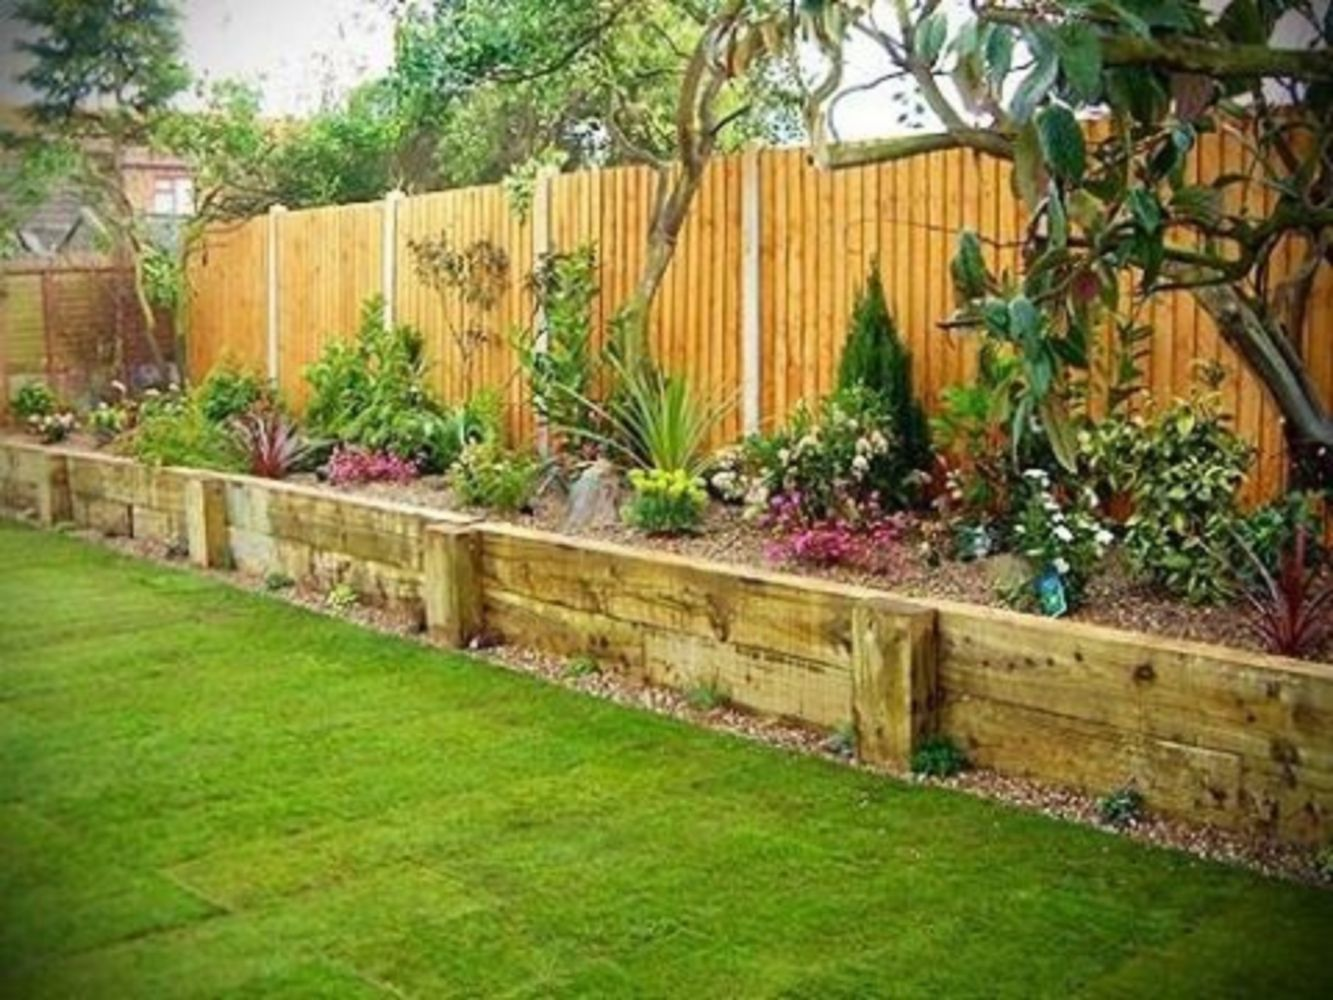 Cheap-DIY-Privacy-Fence-Ideas-21.jpg (1333×1000) | Craft home ideas ...